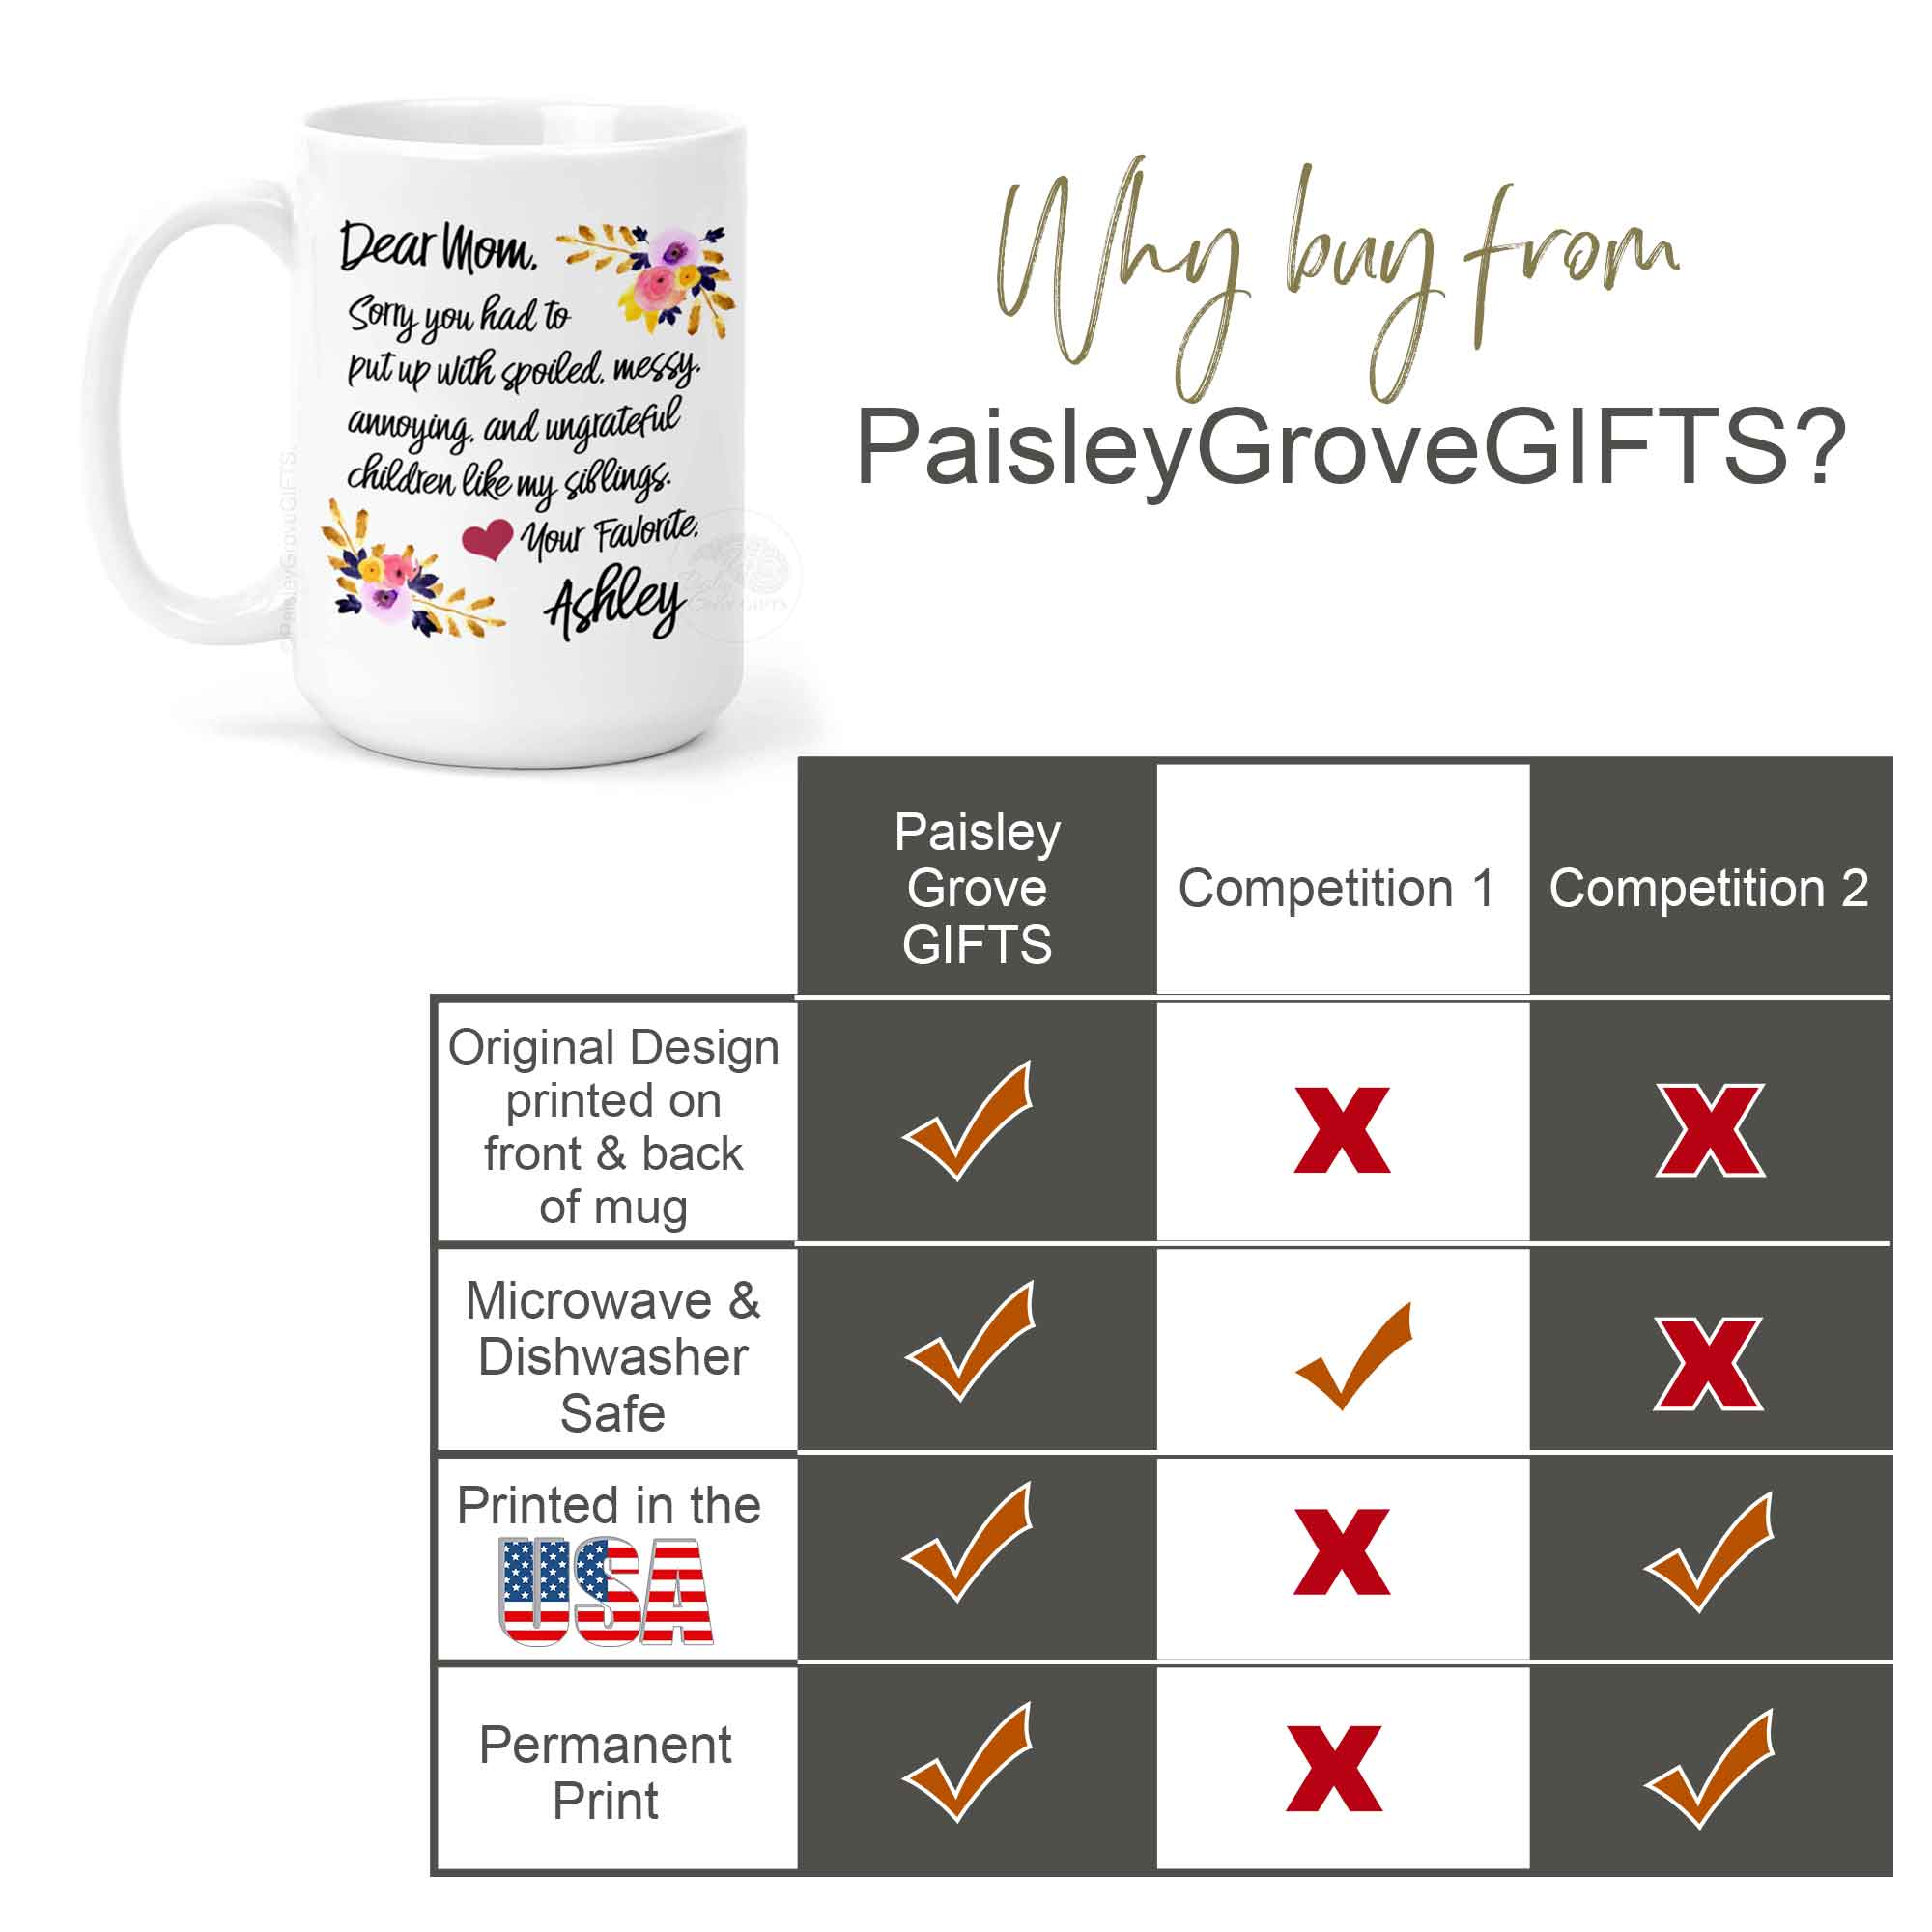 CopyrightPaisleyGroveGIFTS P011a why buy from paisleygrovegifts quality comparison chart for funny mom mug